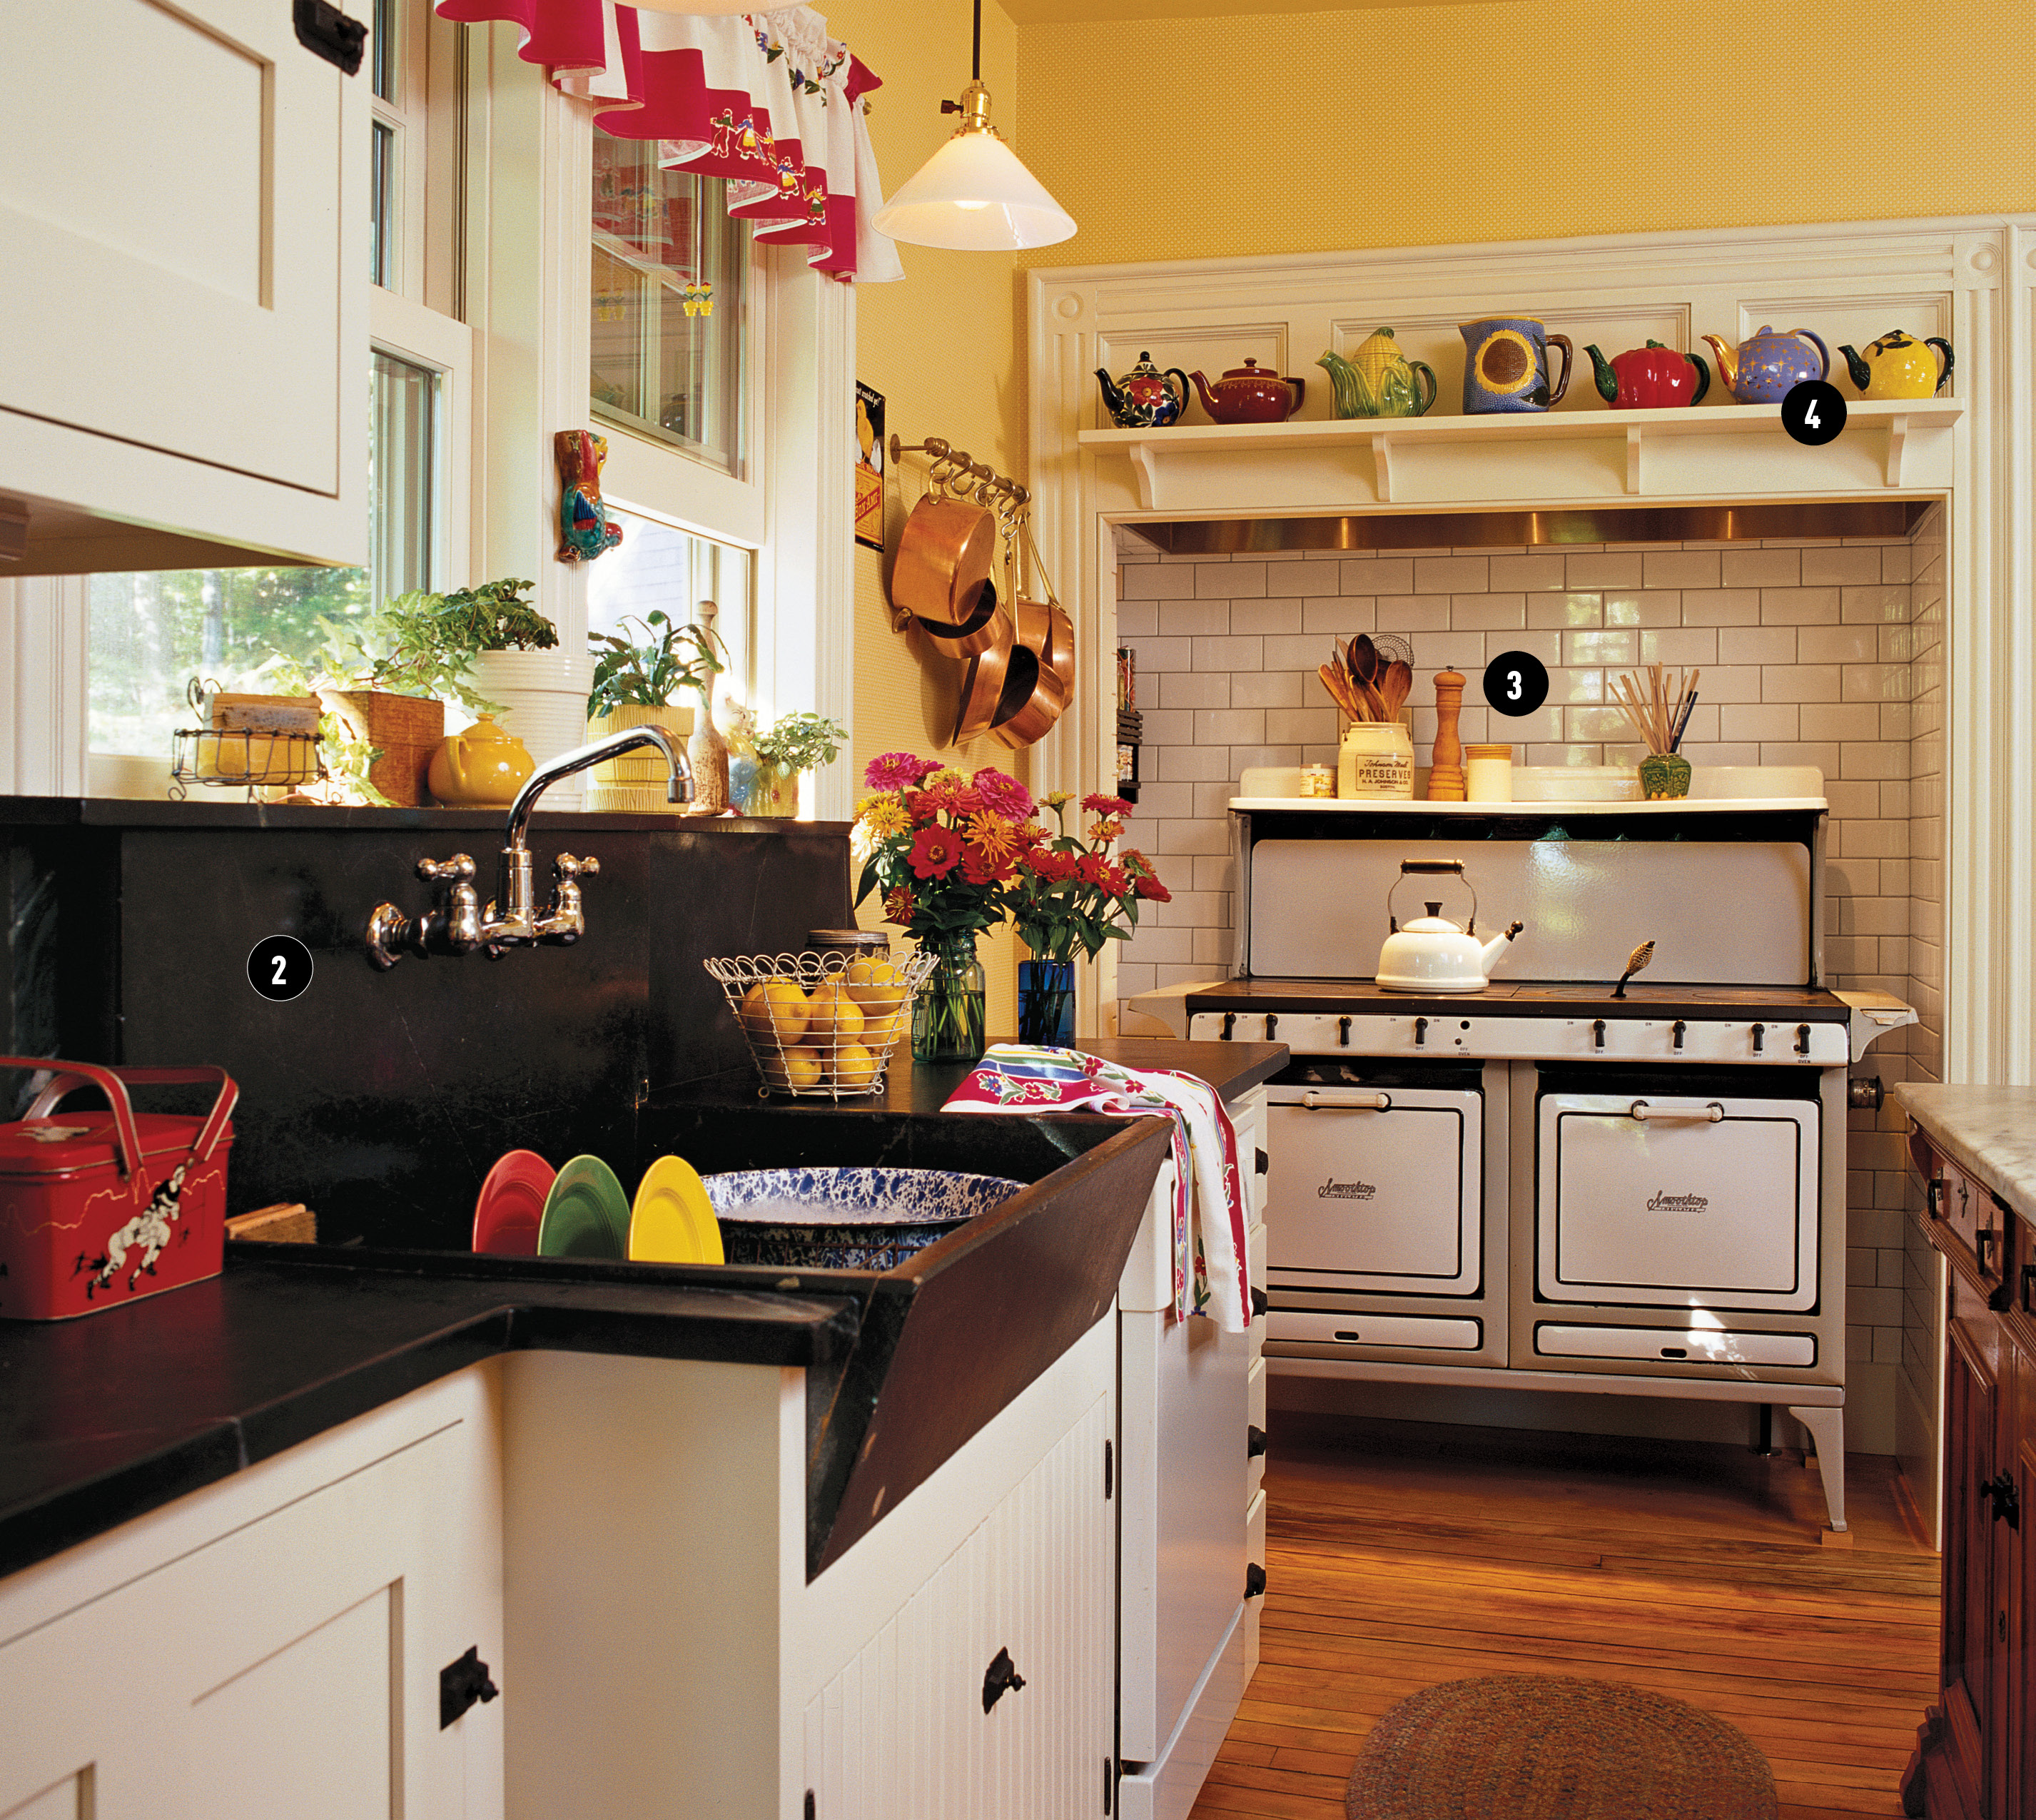 Cottage Style for a Kitchen